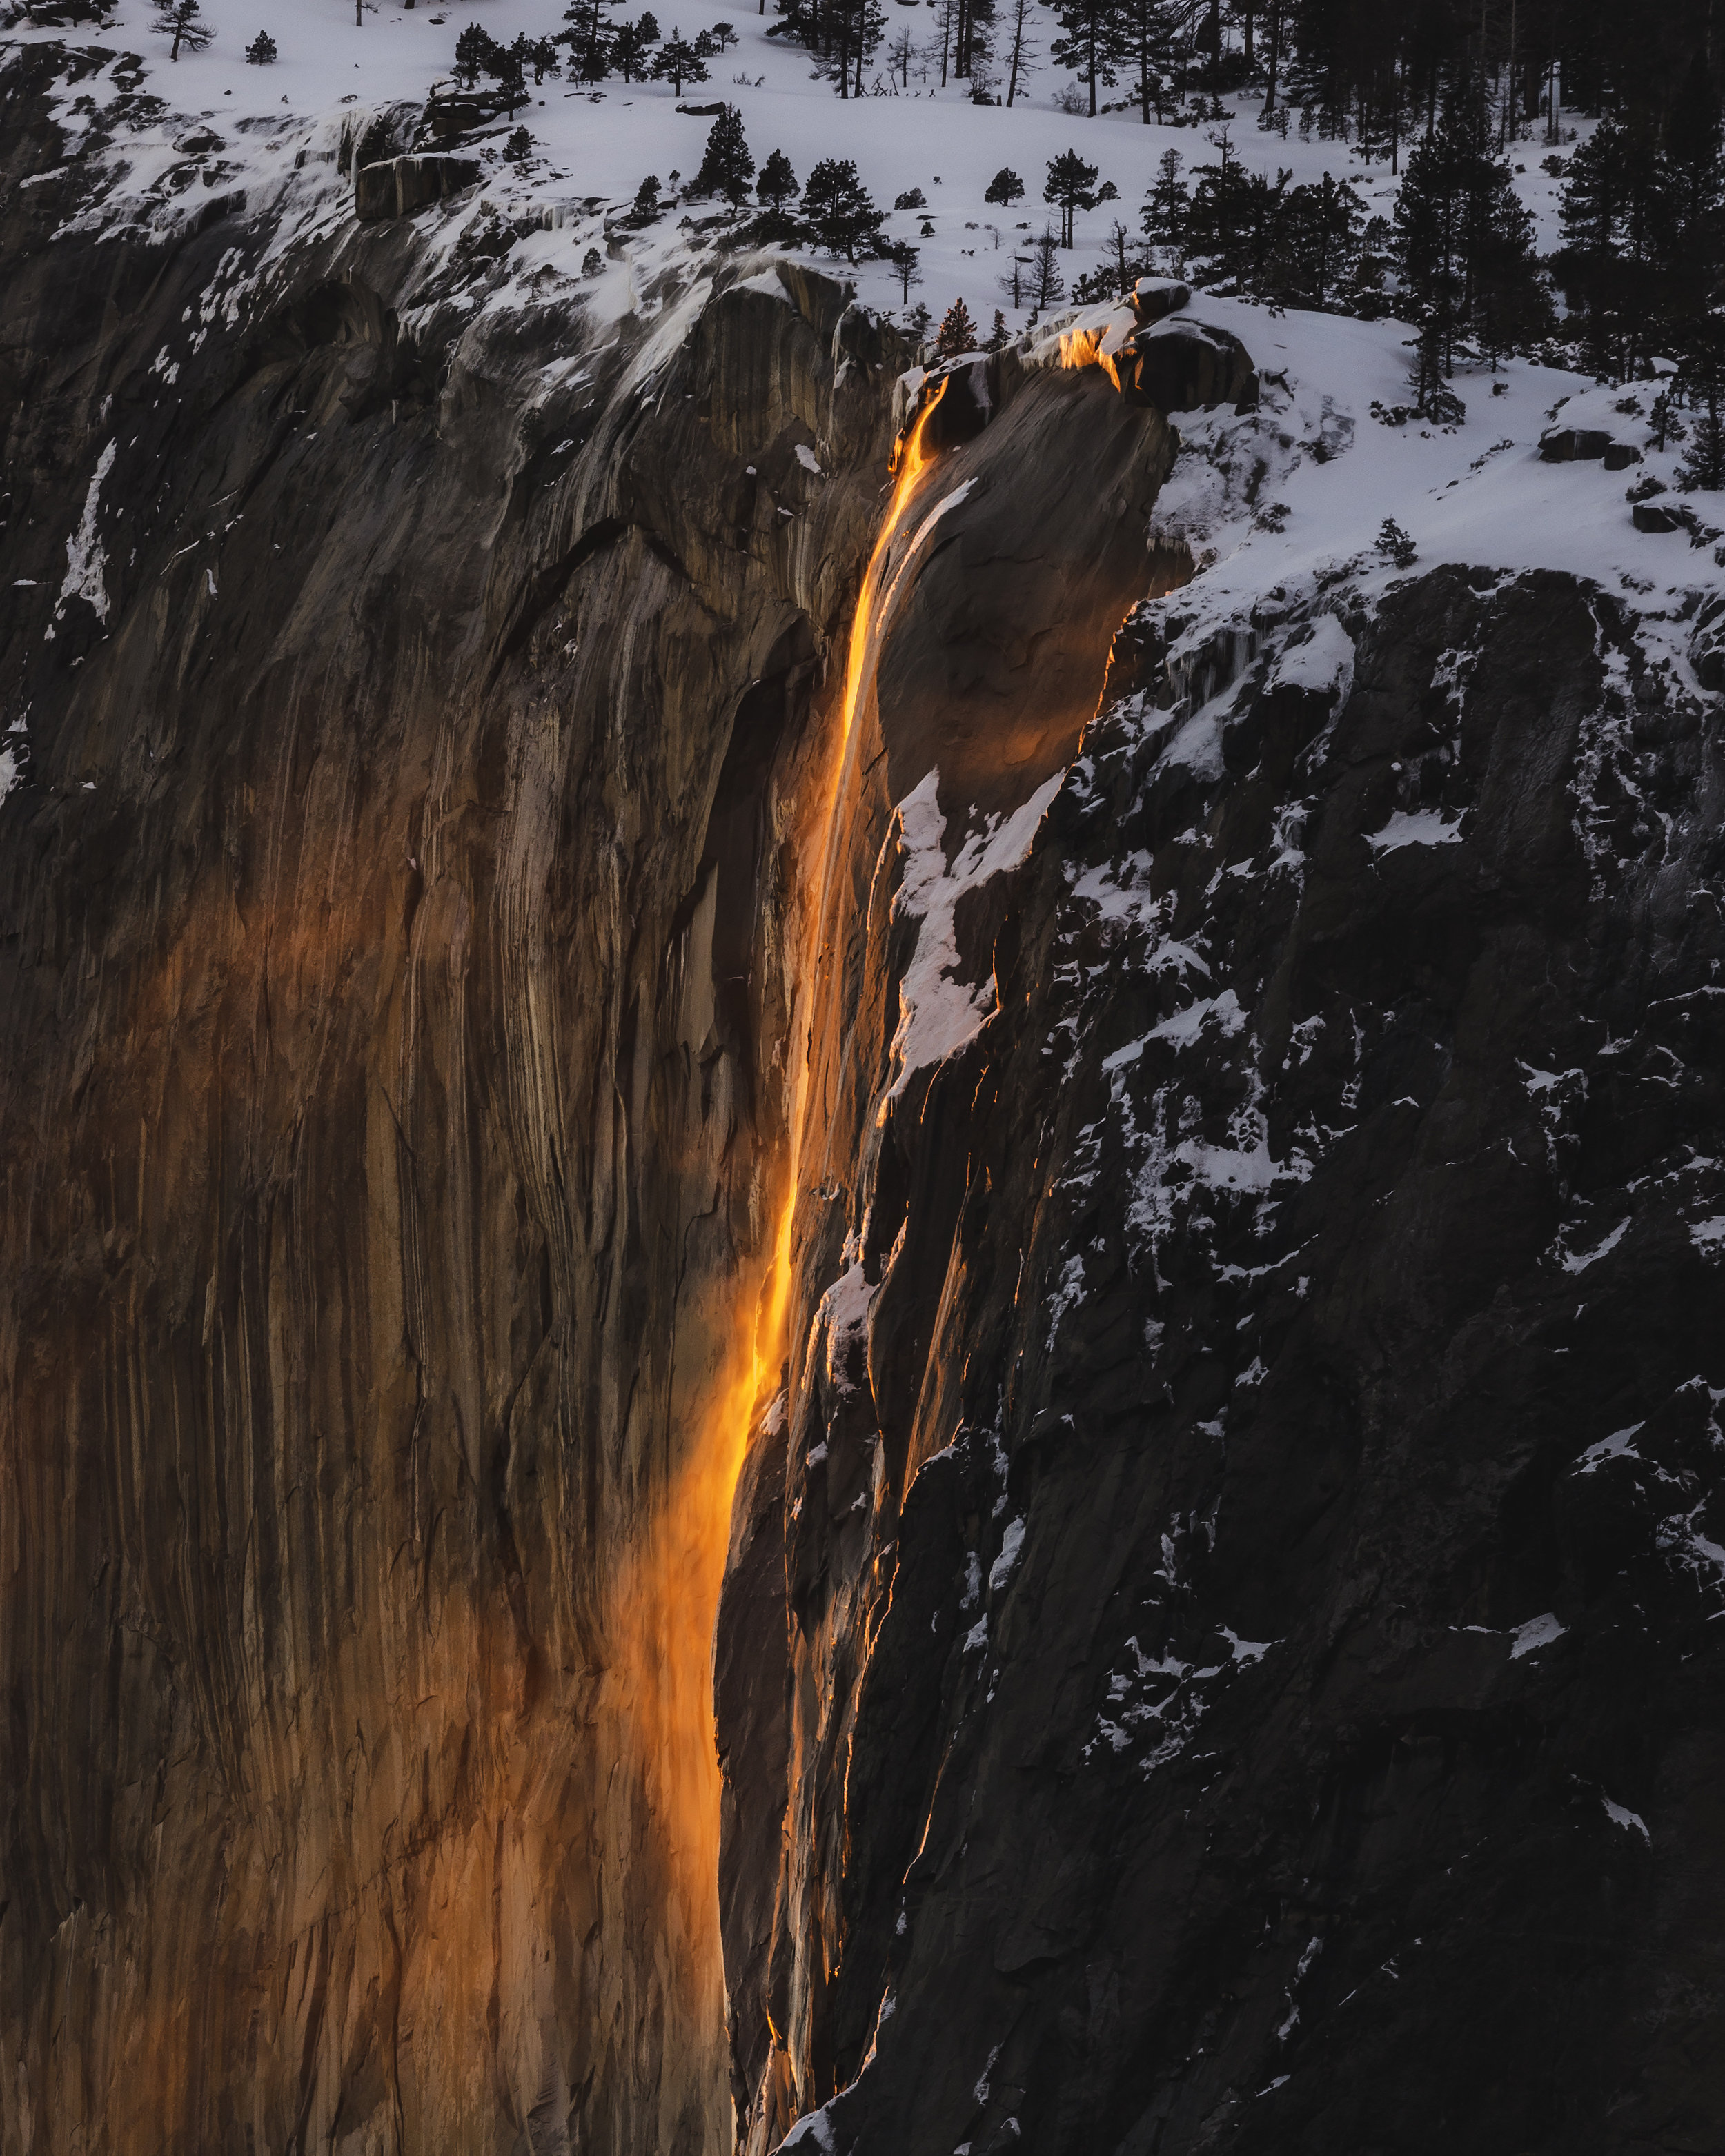 Yosemite Firefall National Park Horsetail Fall Winter February